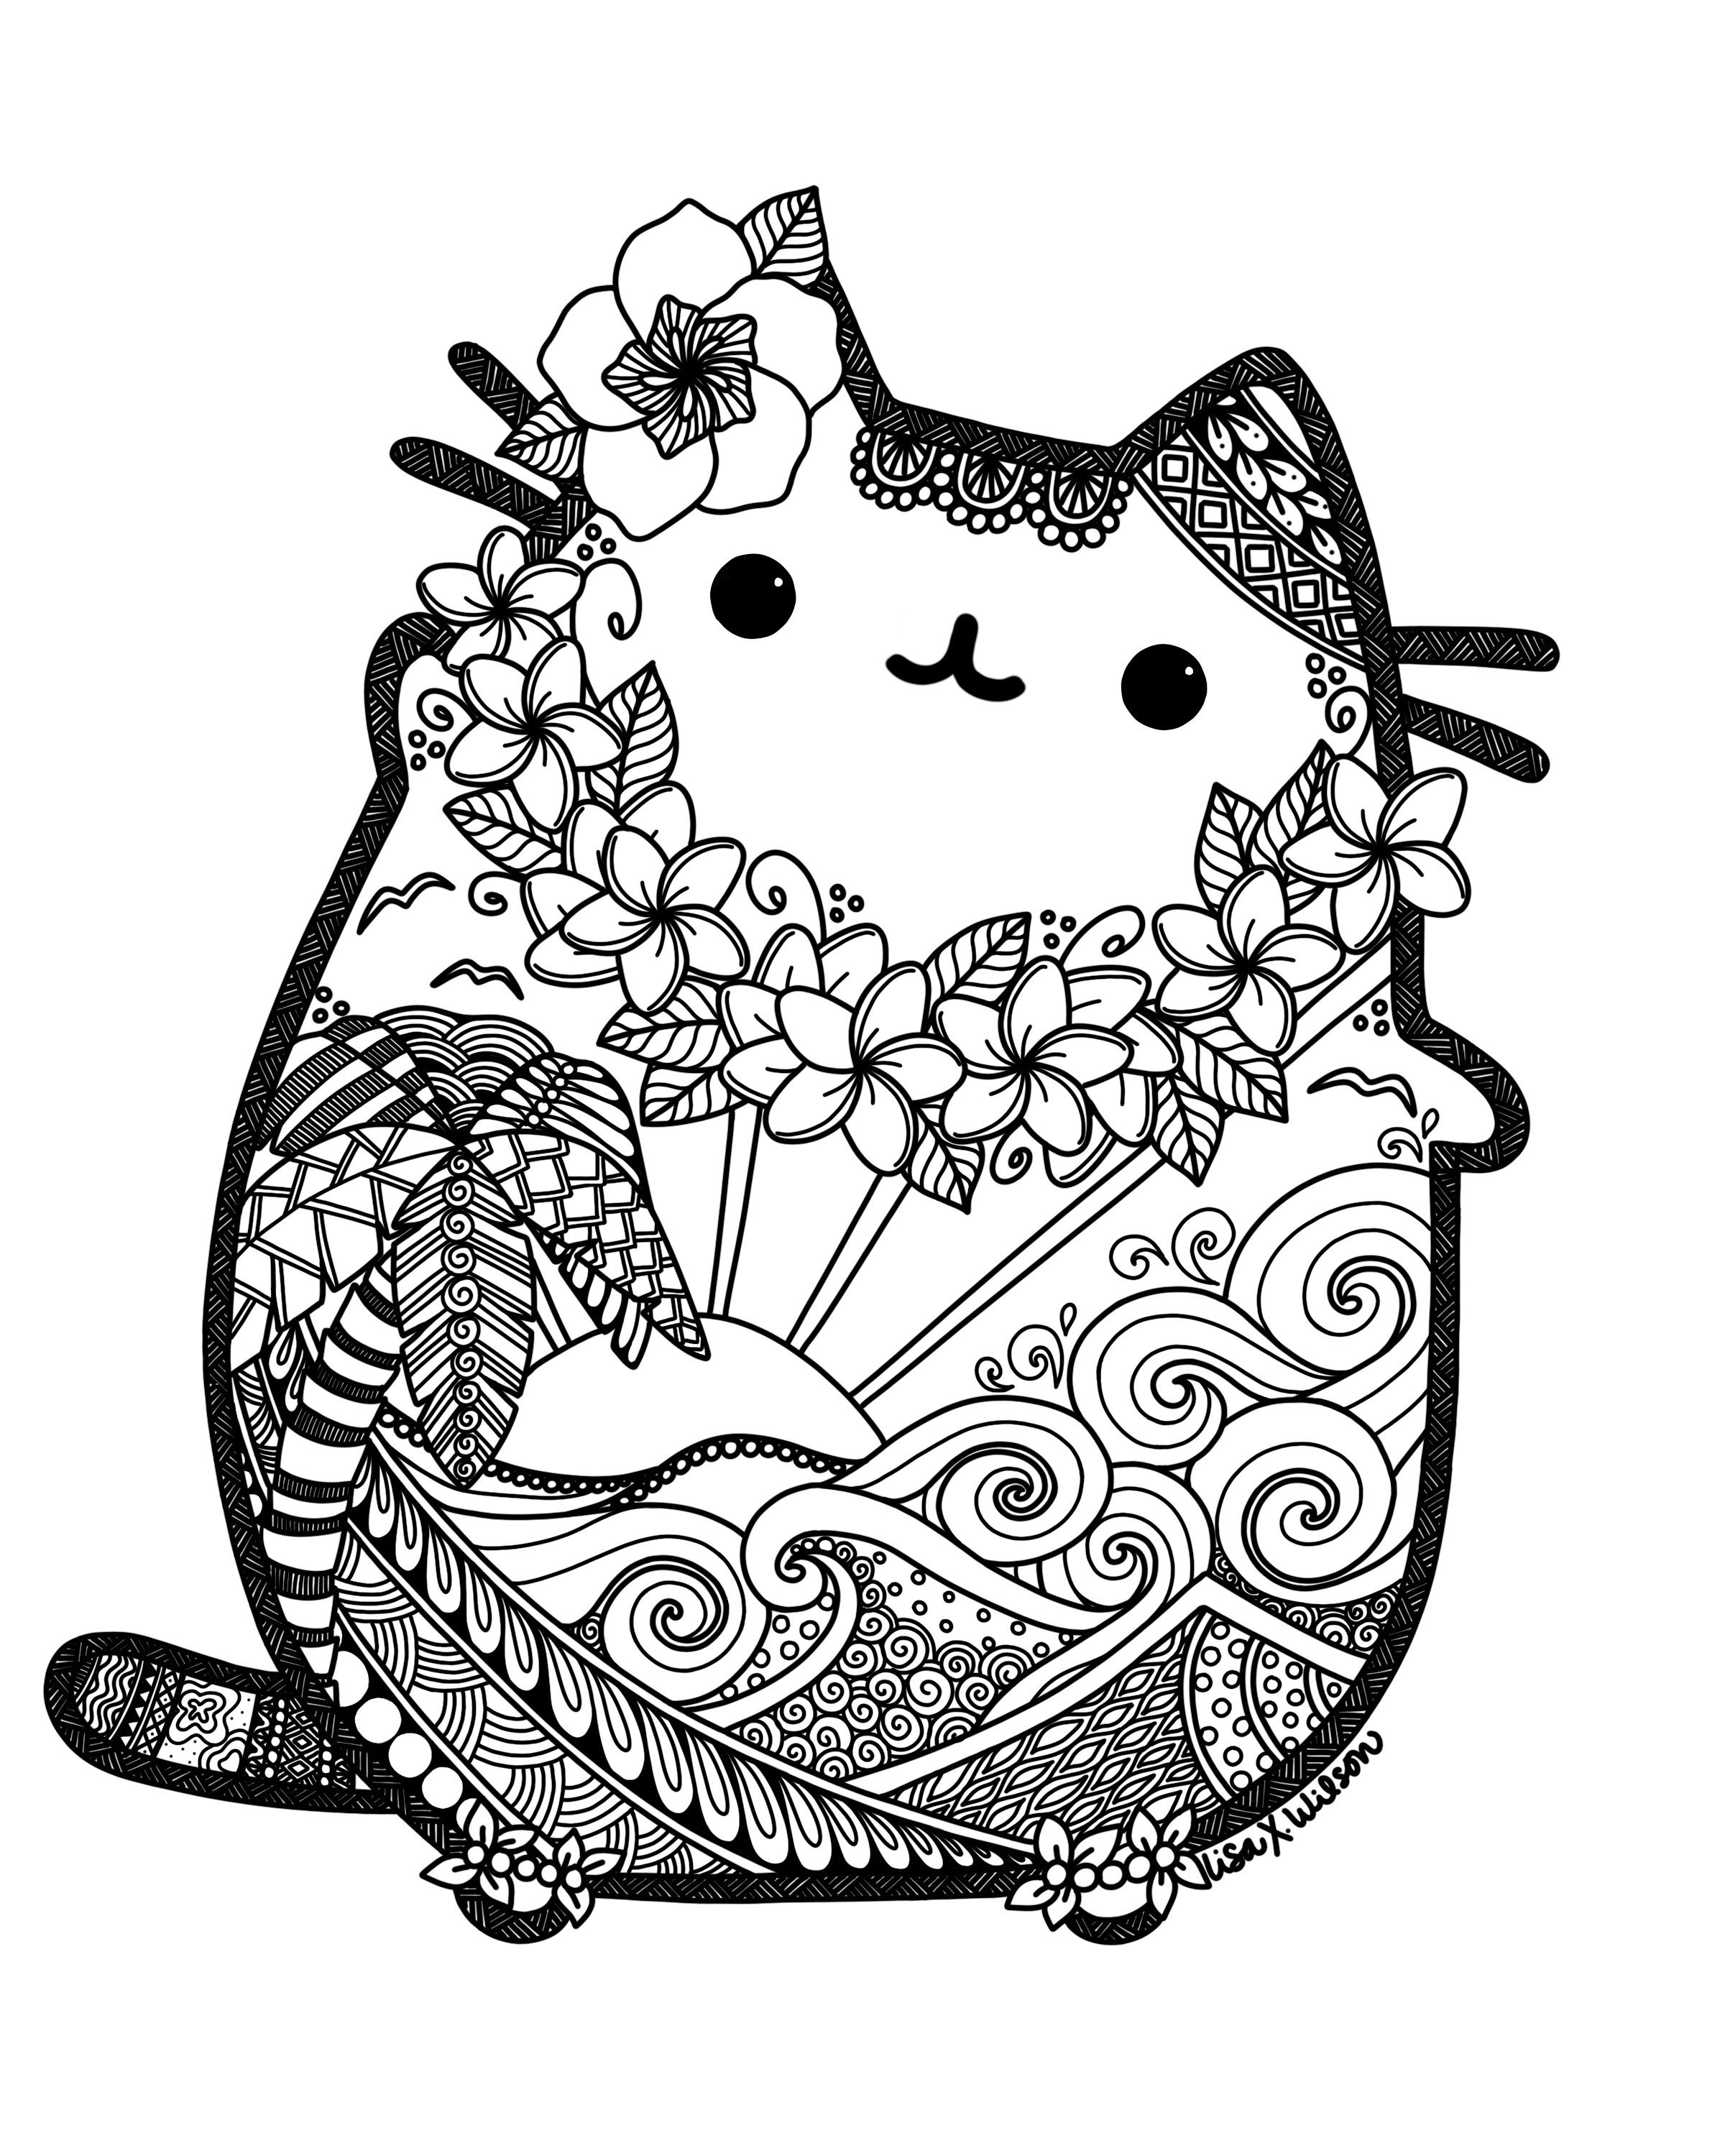 2400x3000 Hawaiian Pusheen Fan Art Pusheen Pusheen, Fan Art